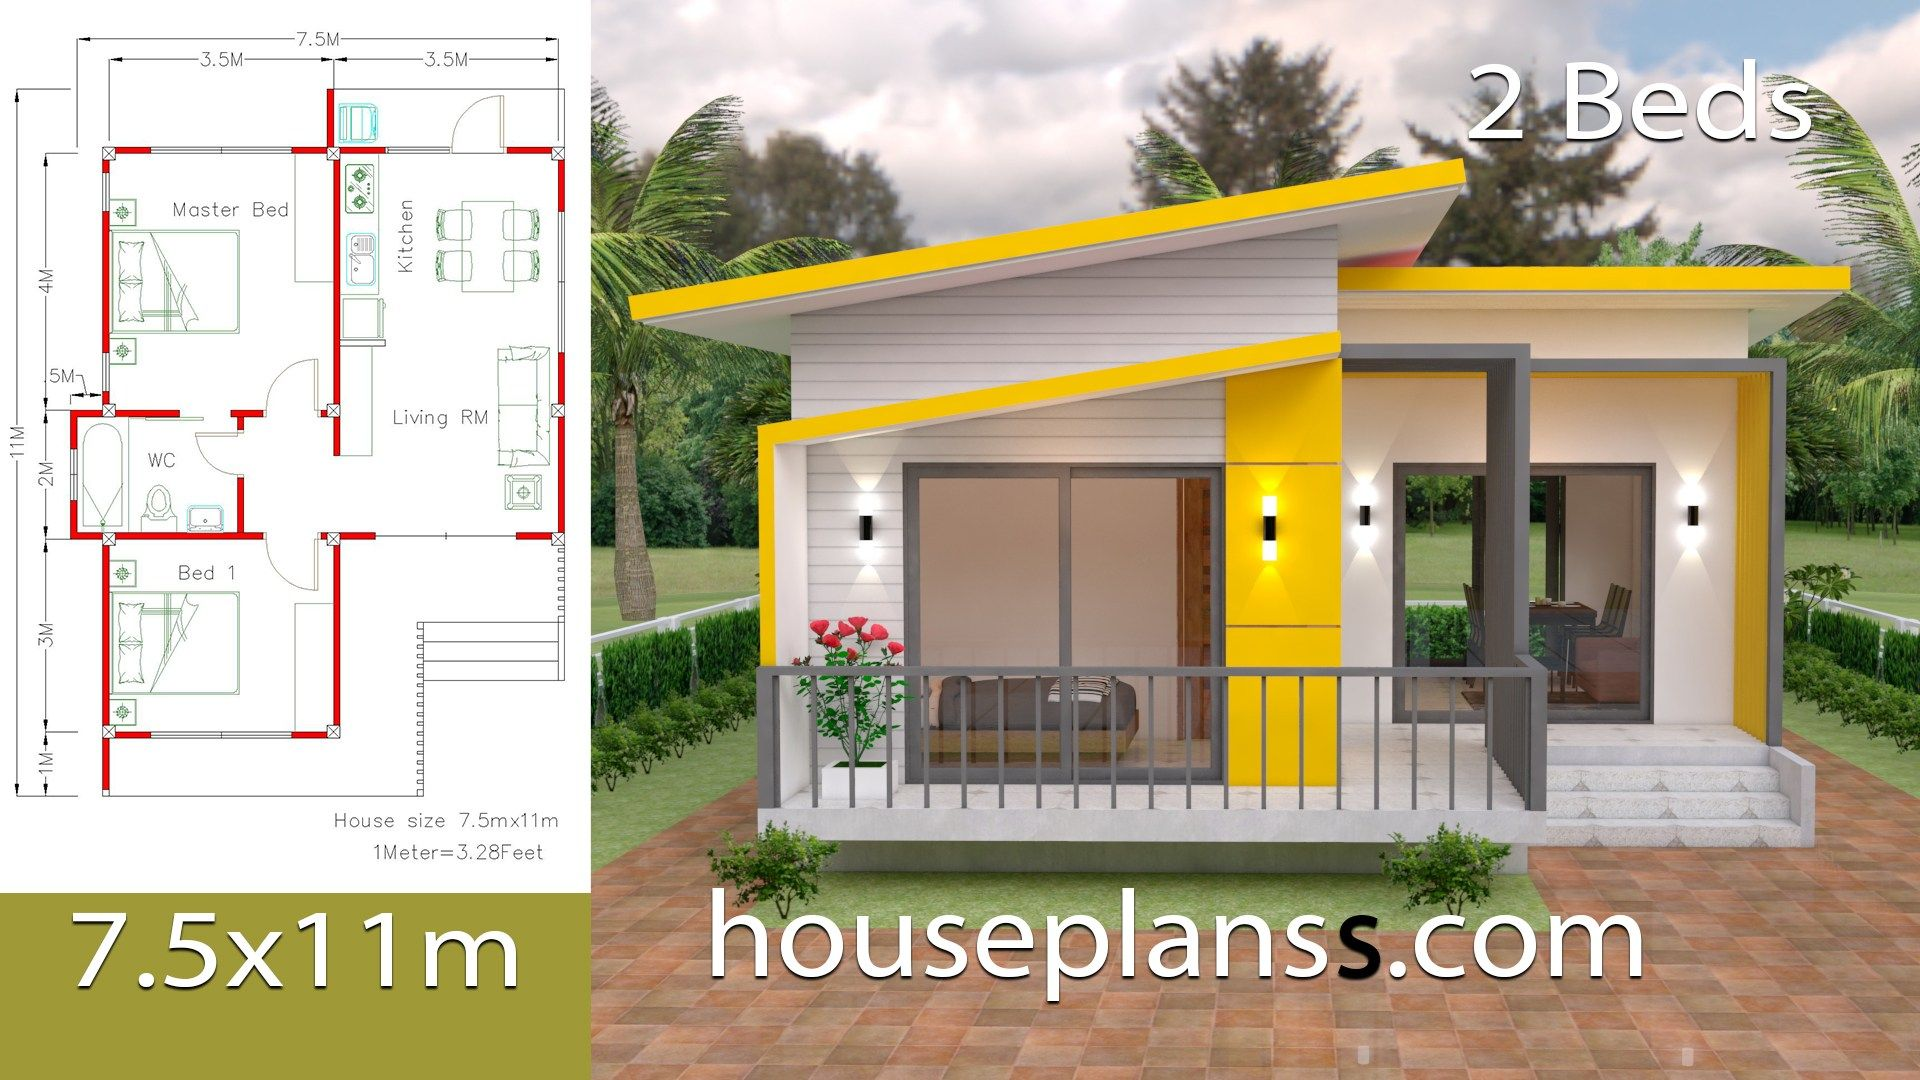 Small House Design Plans 6x8 With 2 Bedroomsthe House Has One Story House 2 Bedrooms 1 Bathroo Small House Design Plans Small House Design Simple House Plans